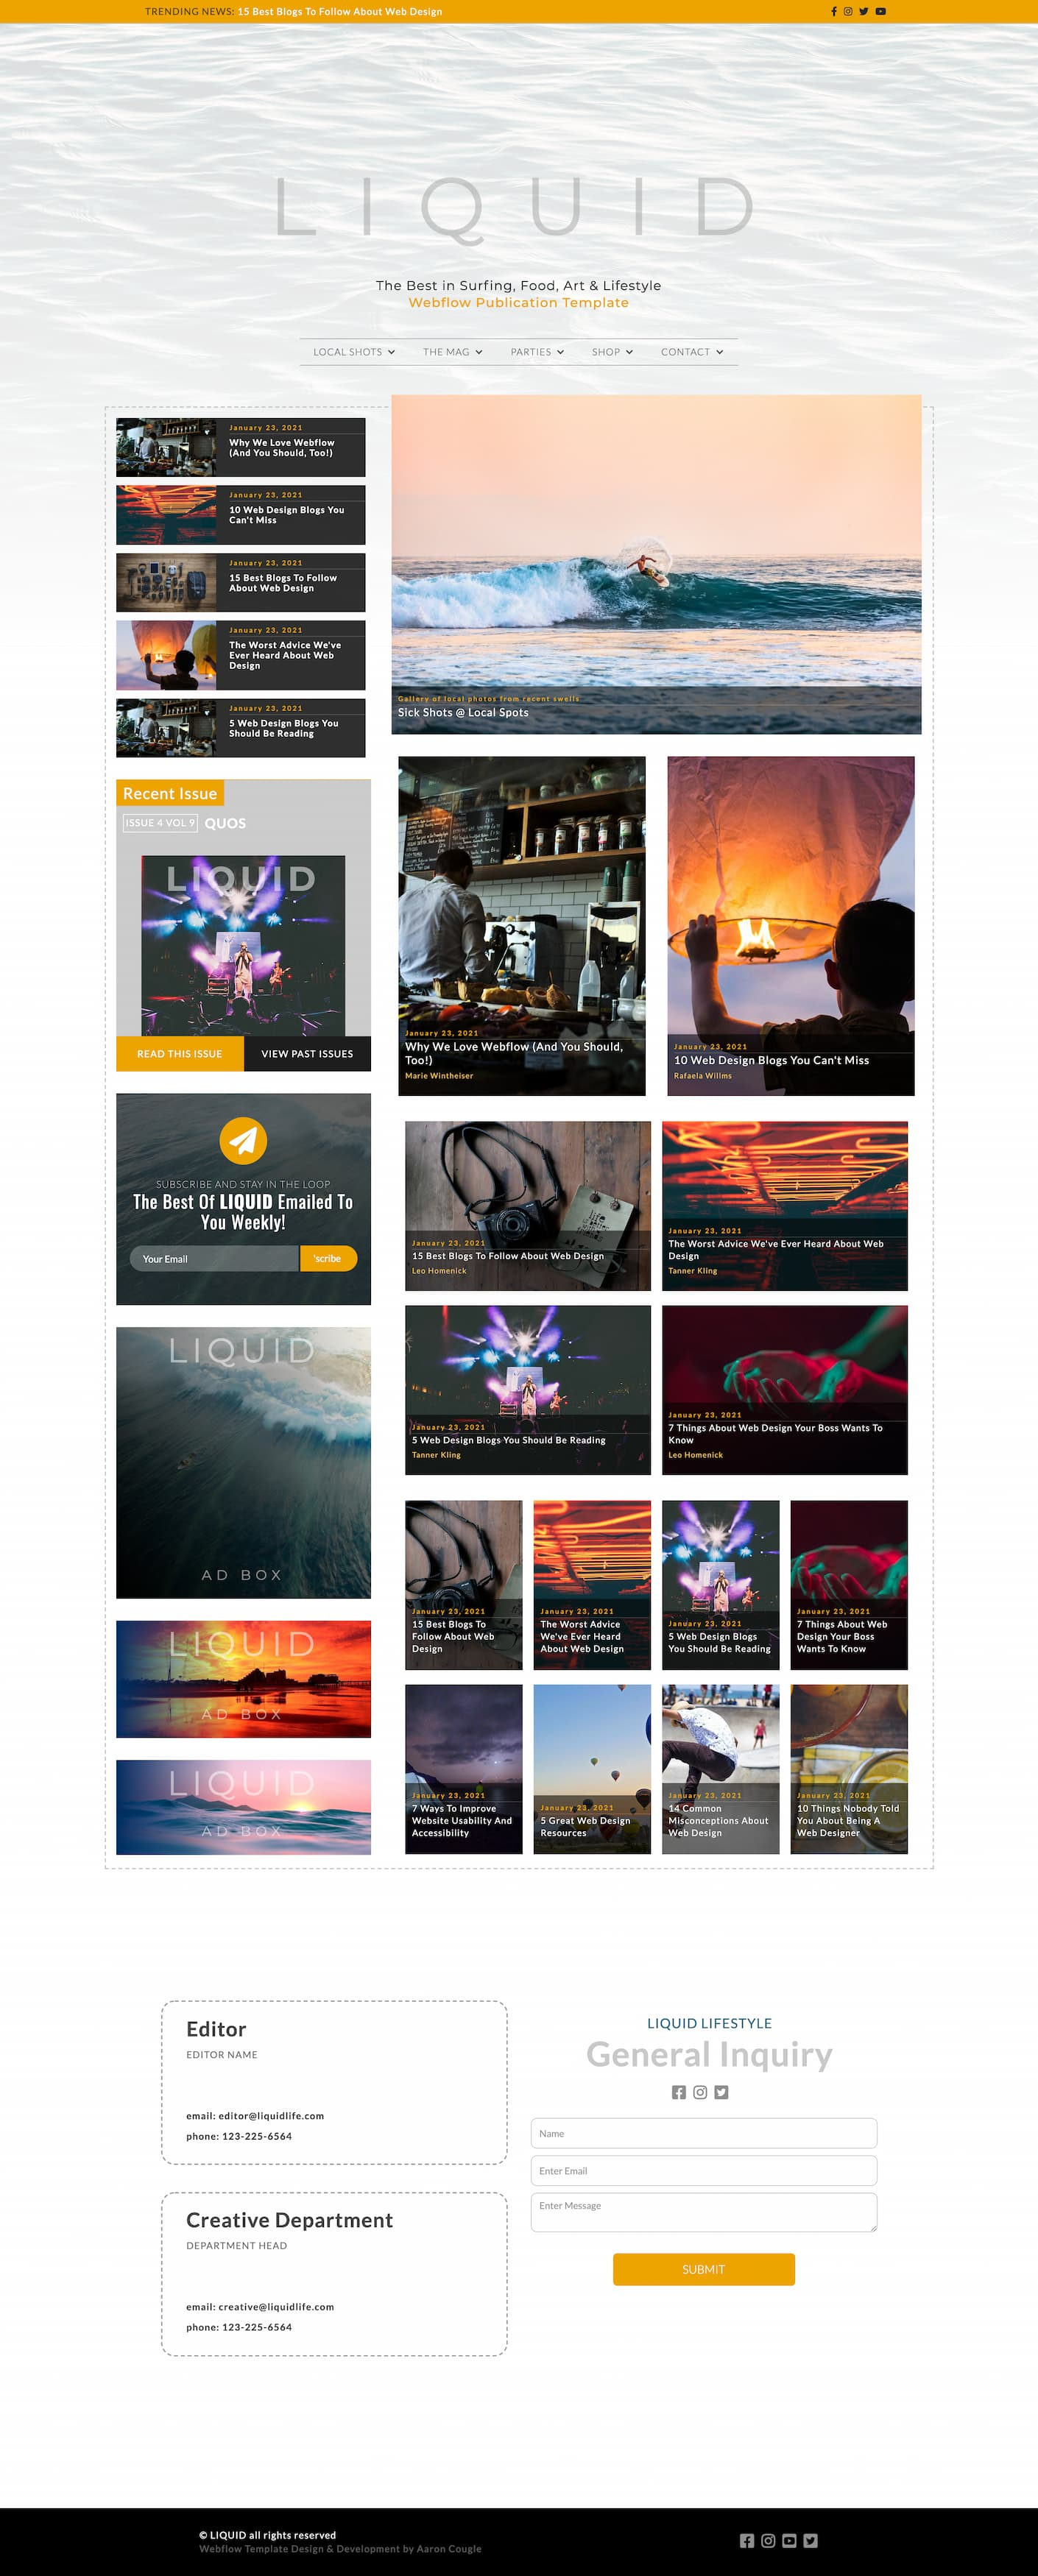 ux design full page image of custom dynamic webflow template called Liquid